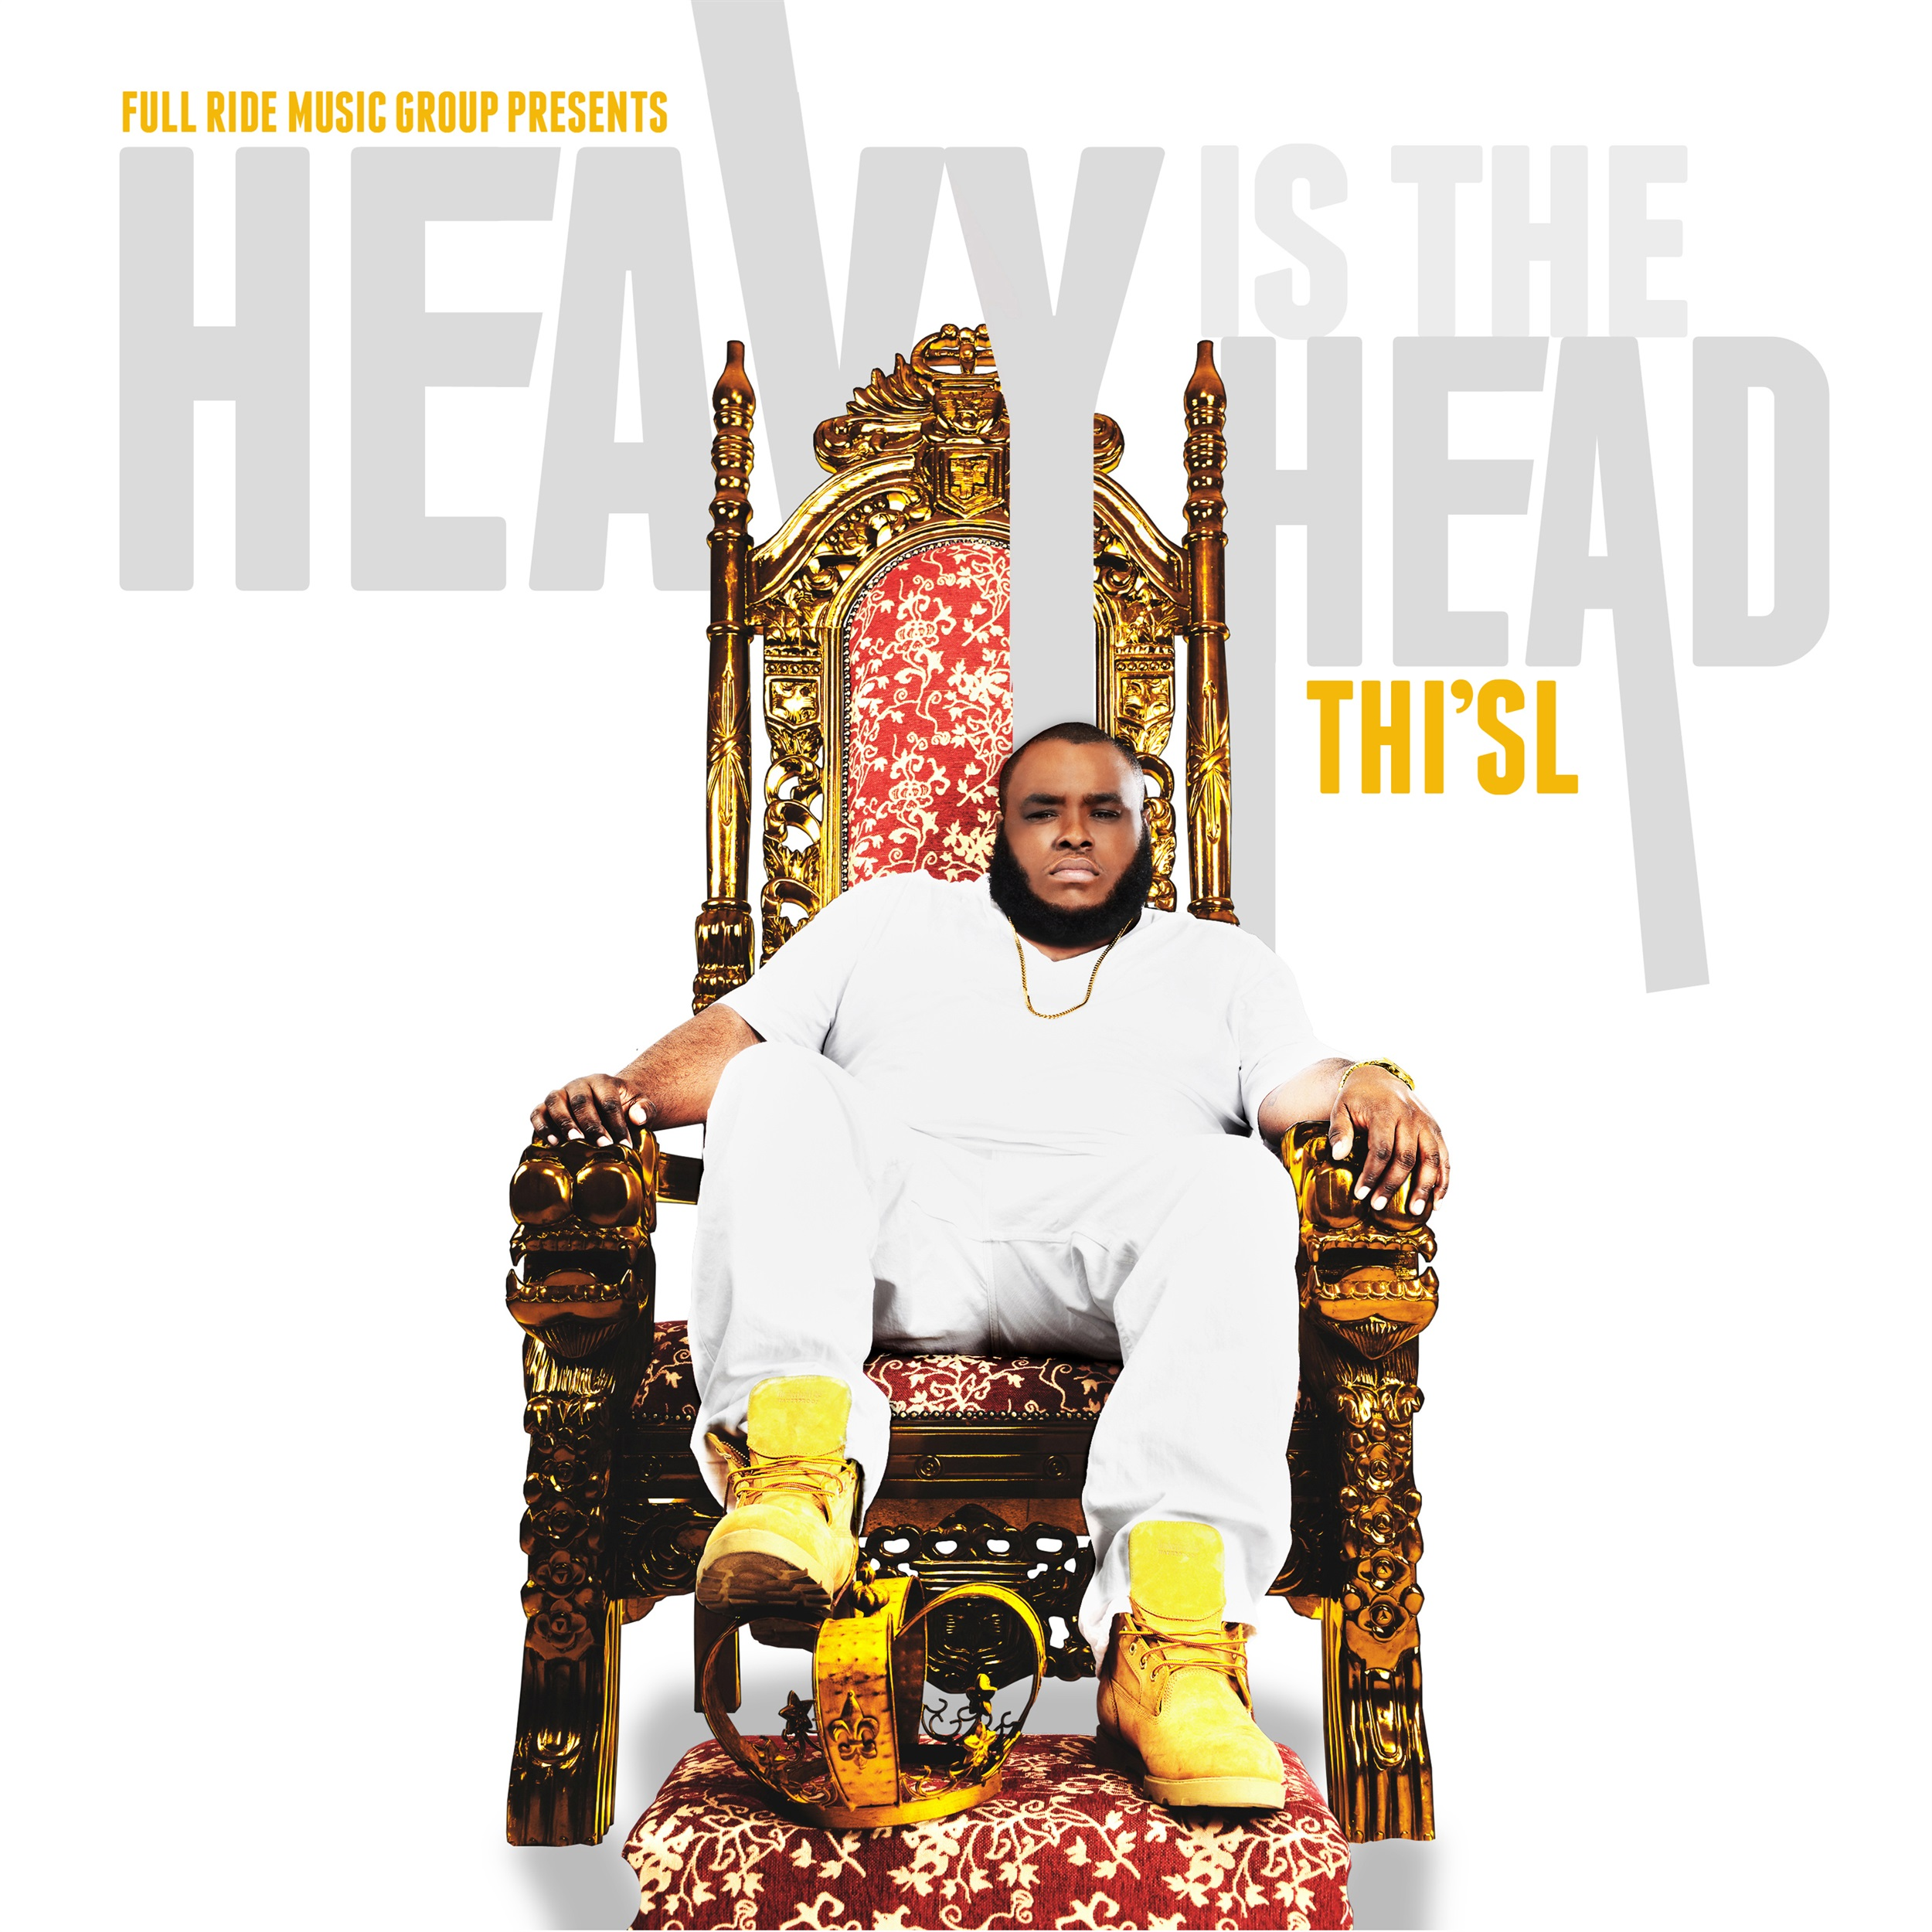 THI'SL – HEAVY IS THE HEAD [2017] 17 track compilation, free download